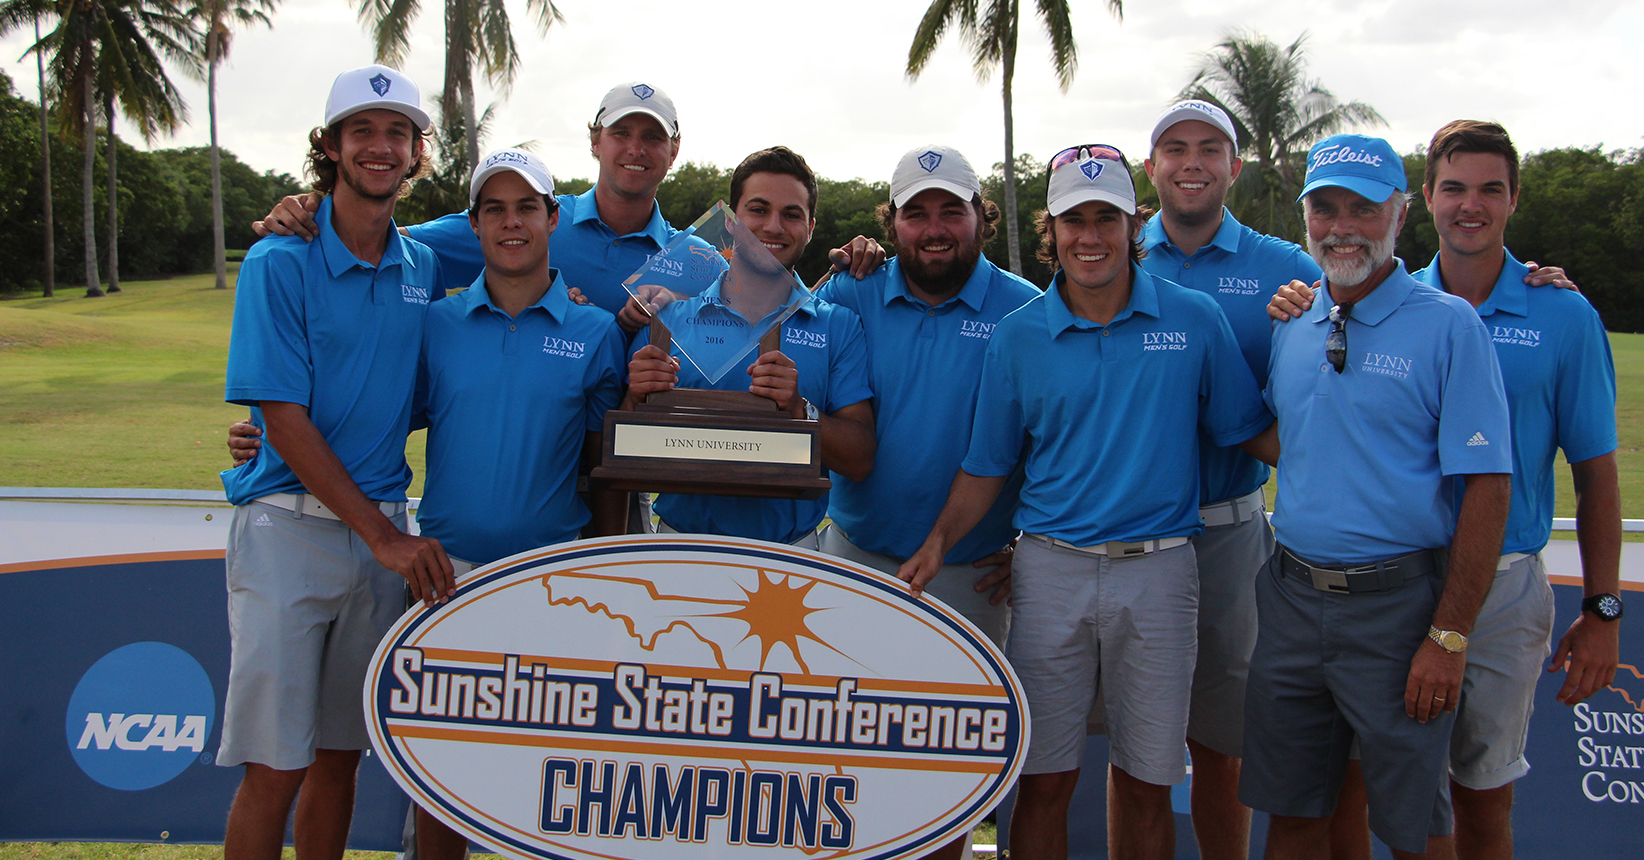 BACK-TO-BACK! Men's Golf Wins 2016 SSC Championship